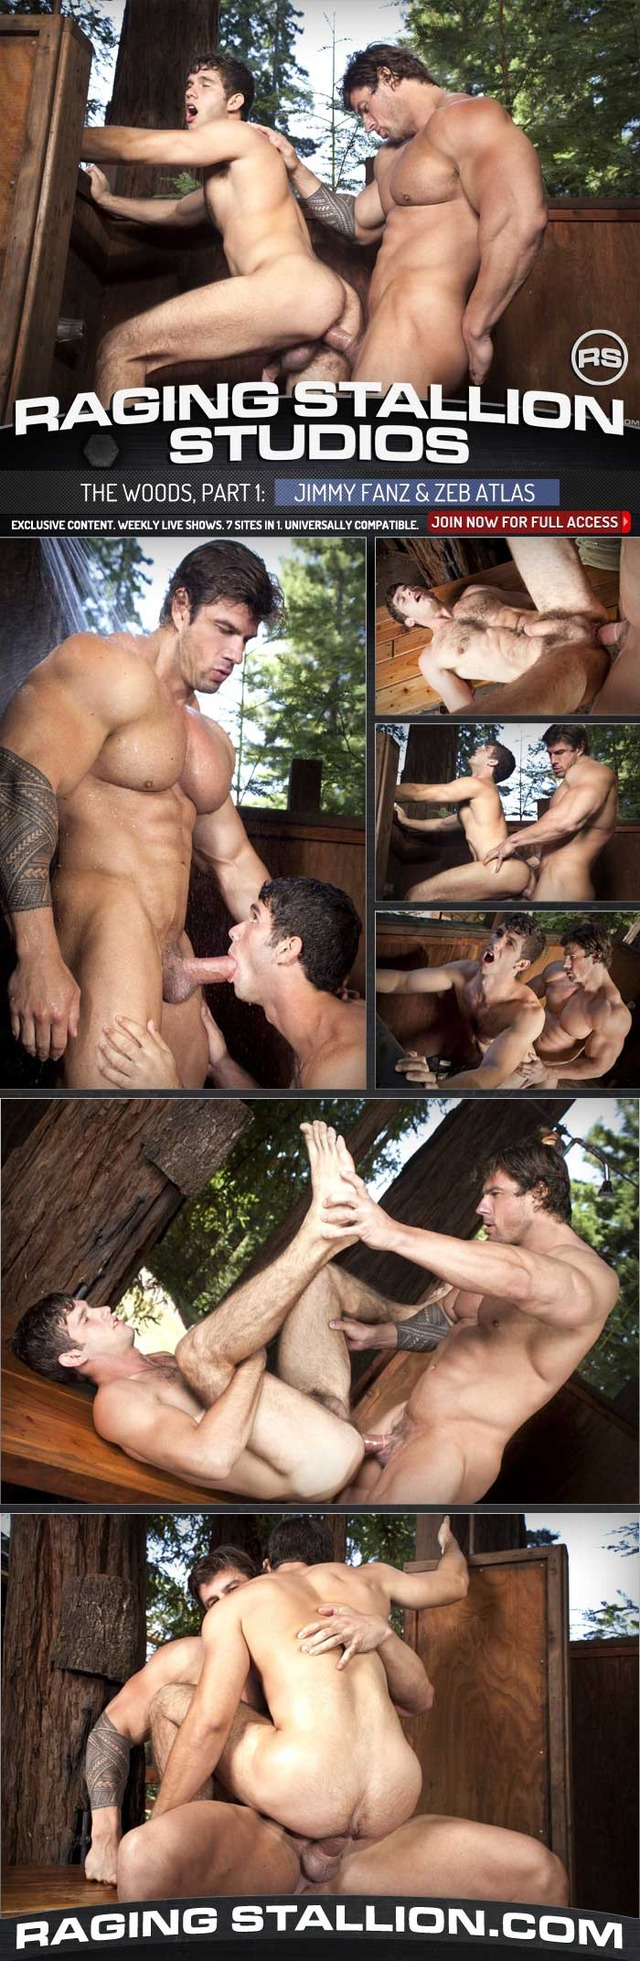 big hairy gay porn hairy fucks gay jimmy fanz bodybuilder woods zeb atlas